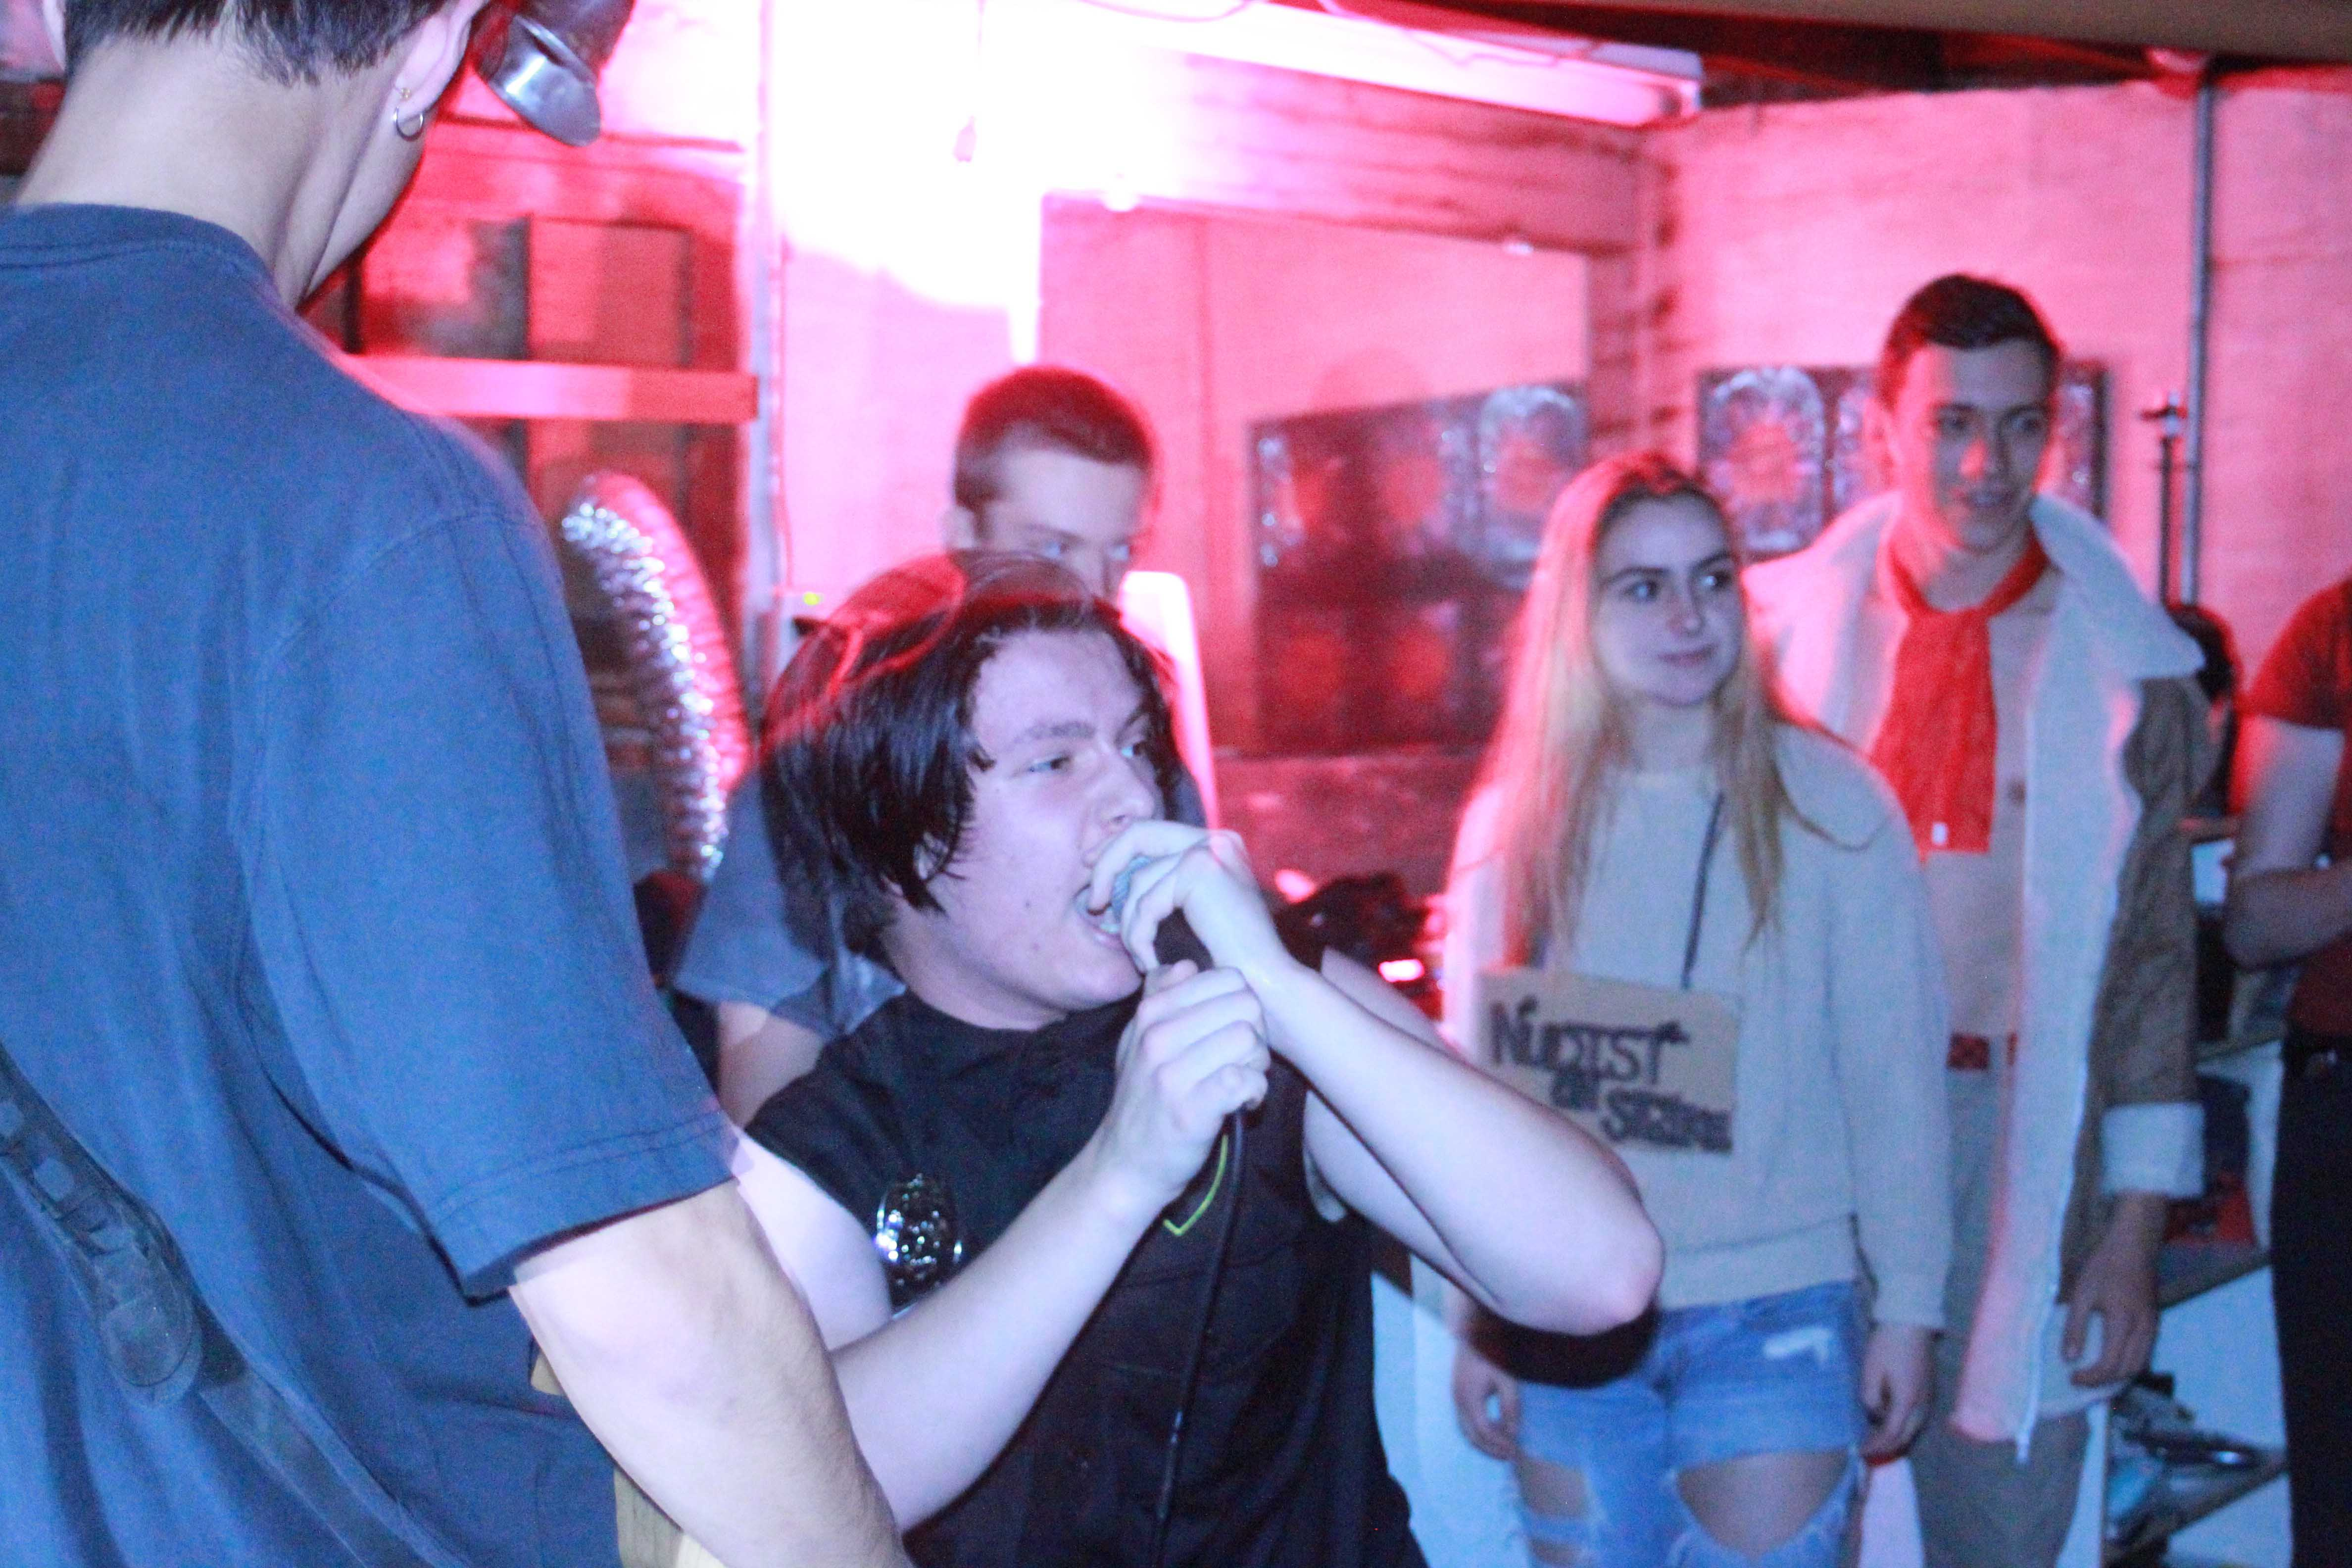 Sharlie, others play basement show